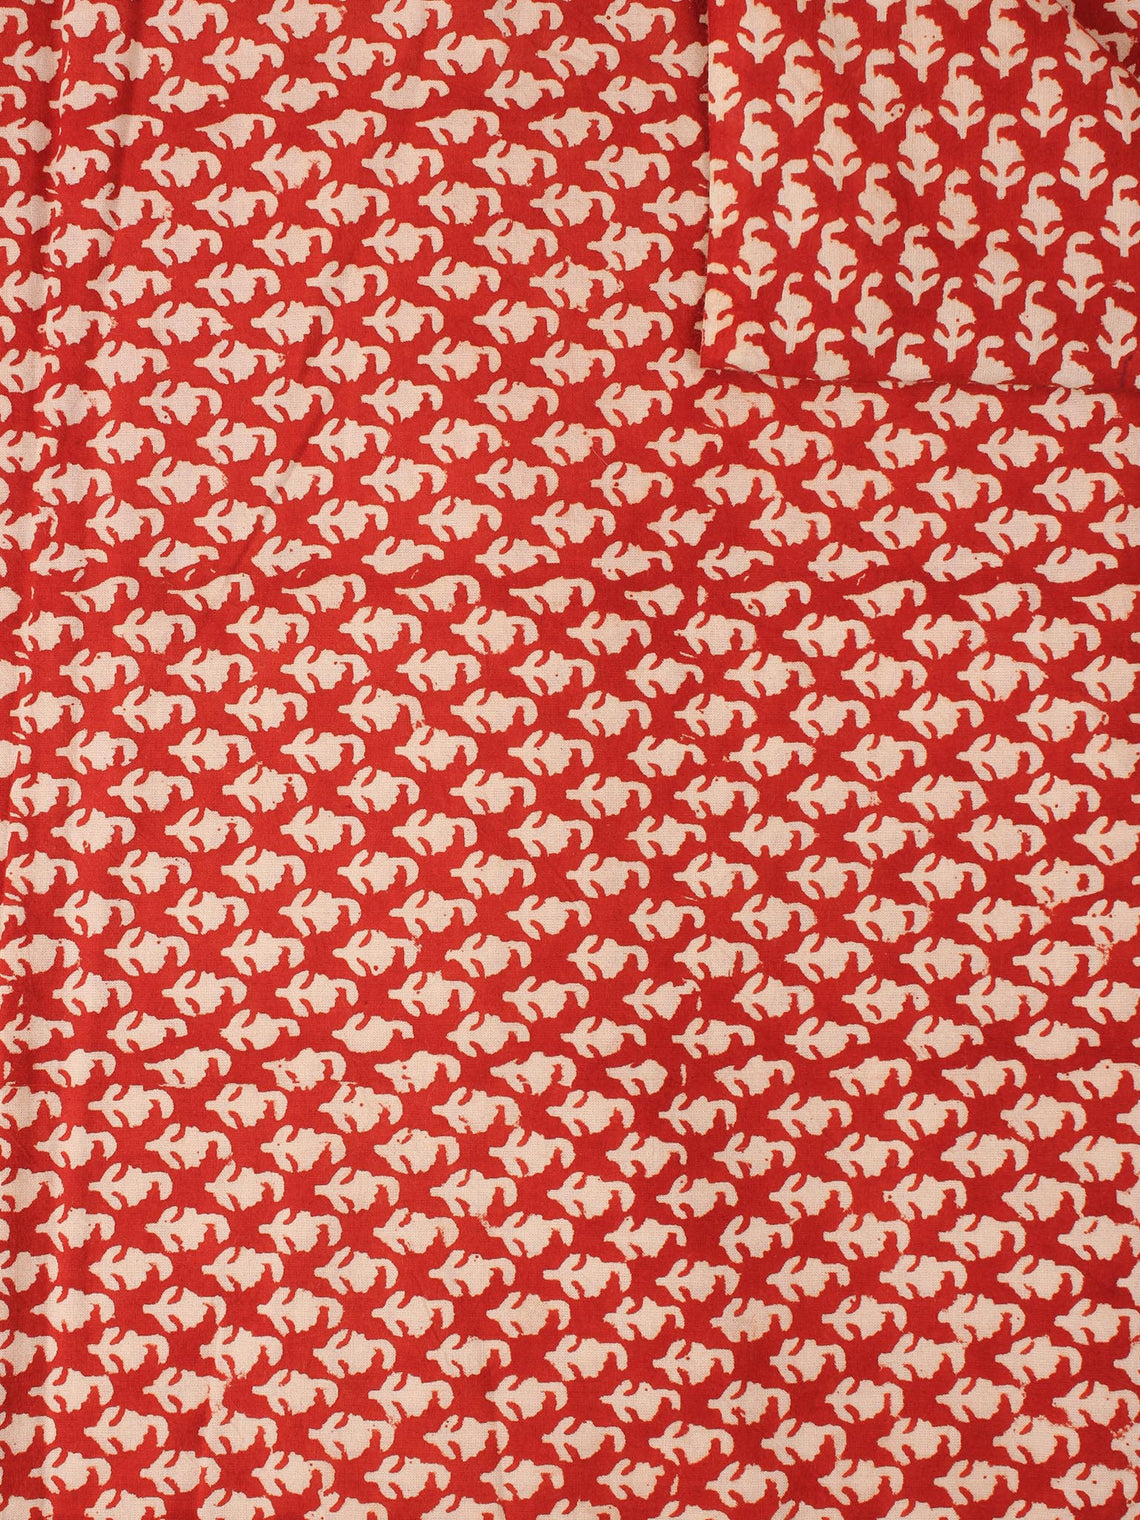 Red Beige Natural Dyed Hand Block Printed Cotton Fabric Piece - F0916227